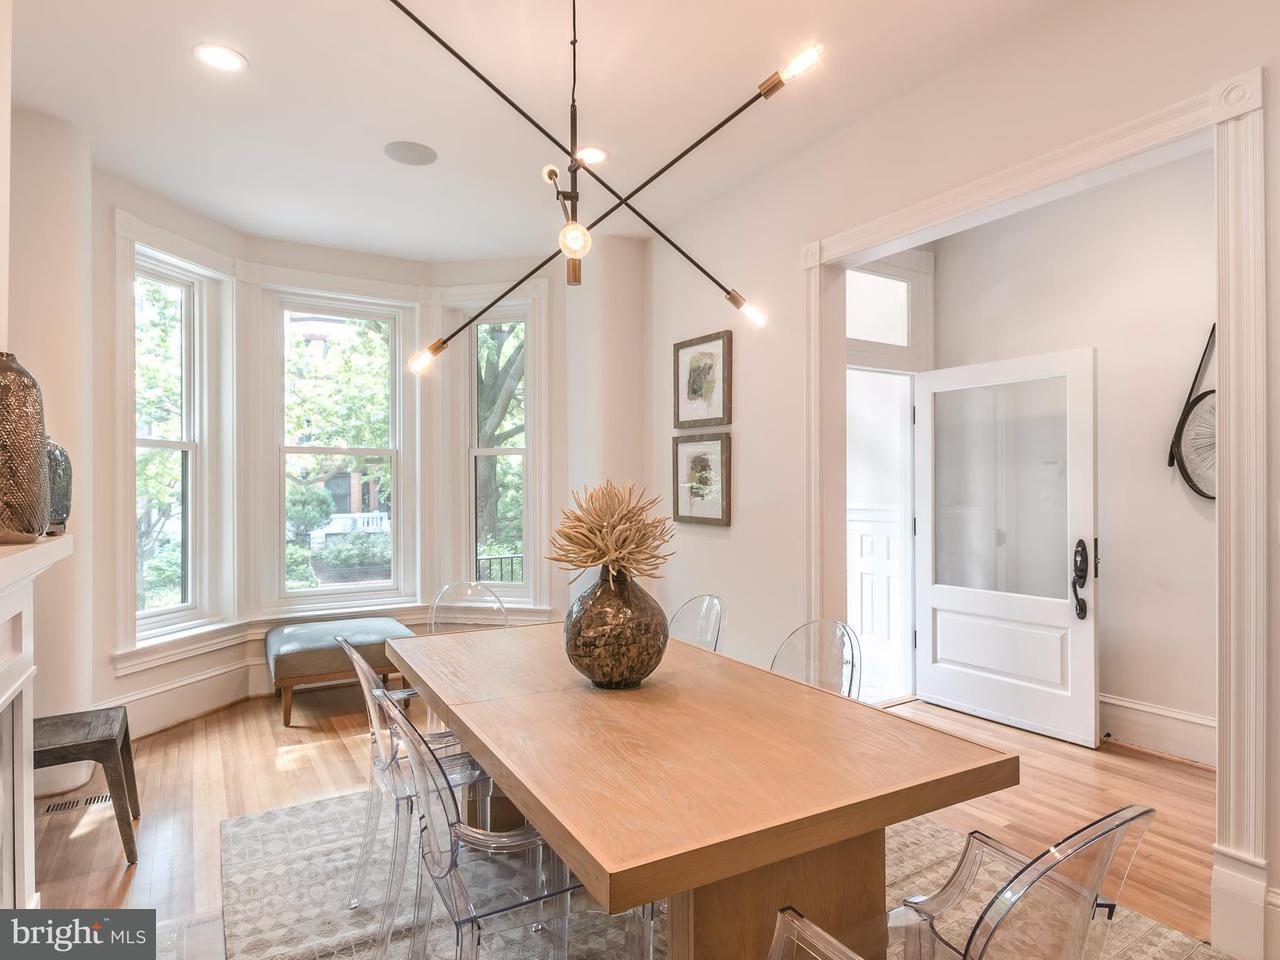 Additional photo for property listing at 1315 Euclid St NW  Washington, District Of Columbia 20009 United States